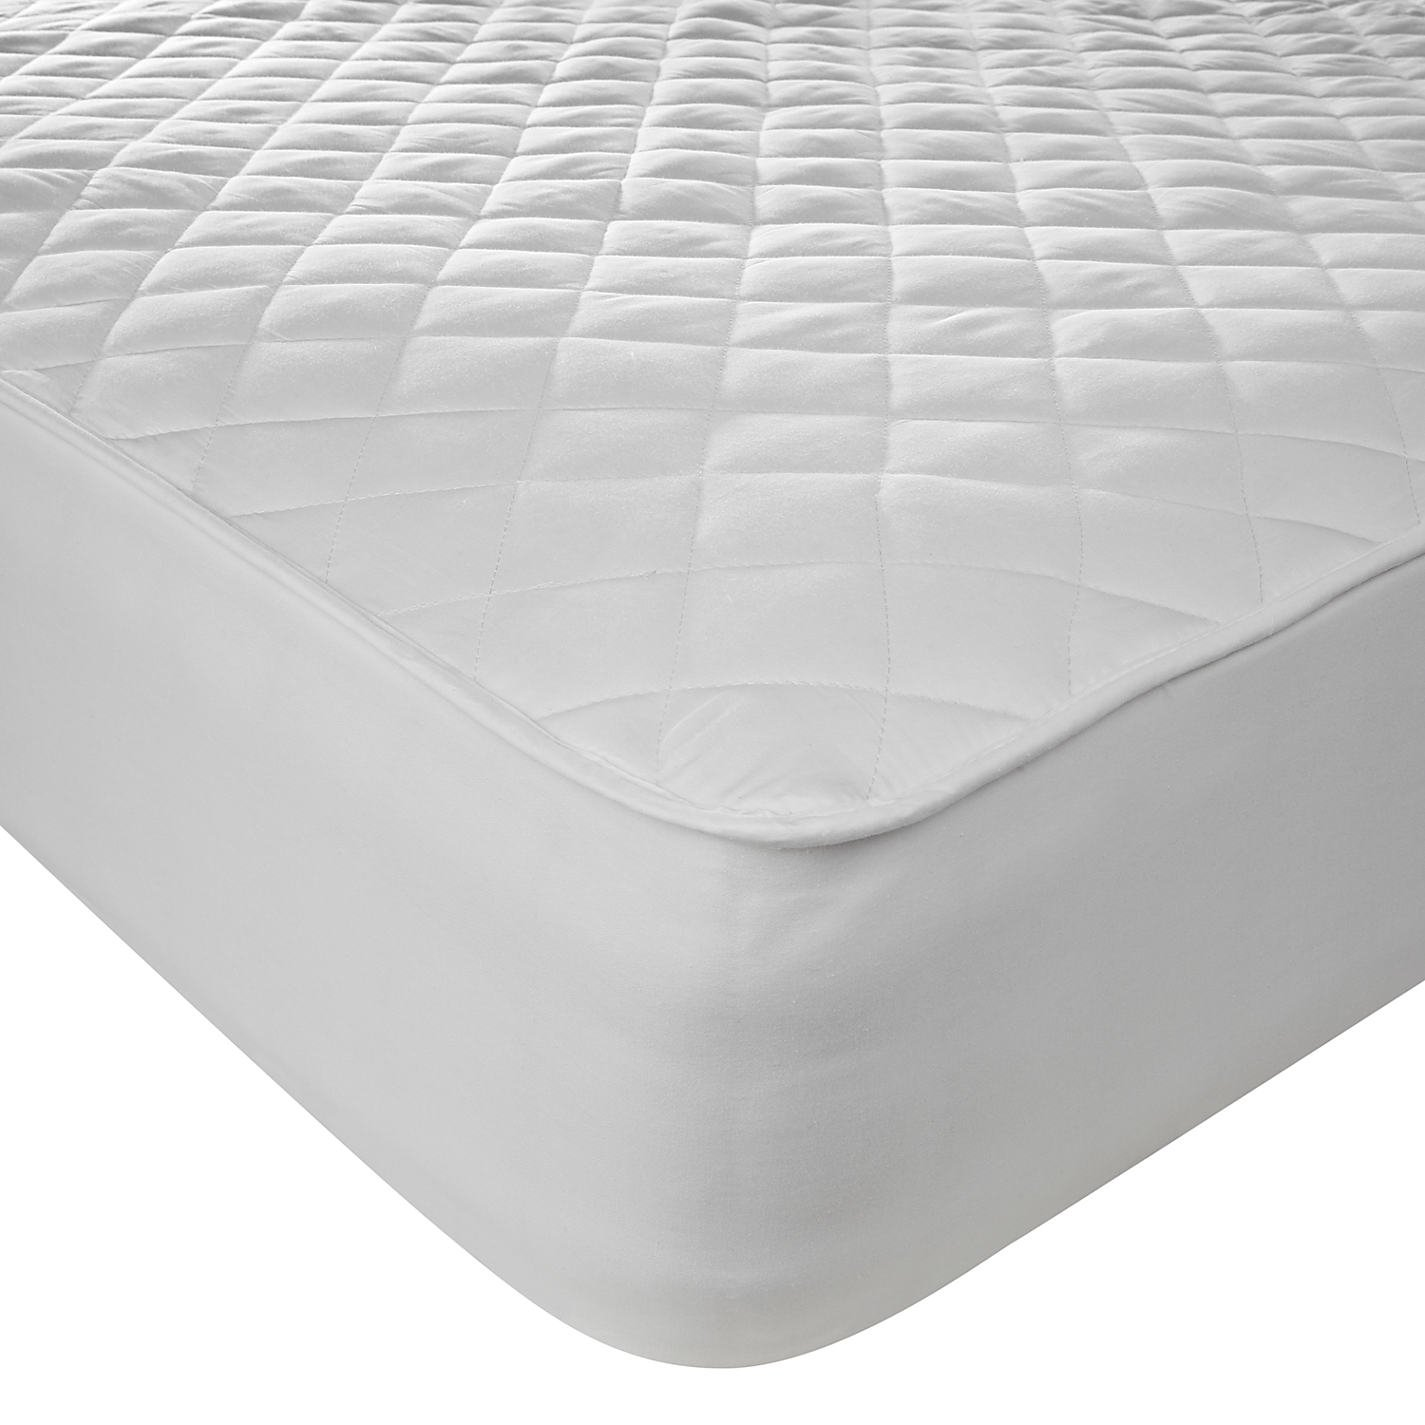 Hometex Quilted Mattress Protector (Small Double)